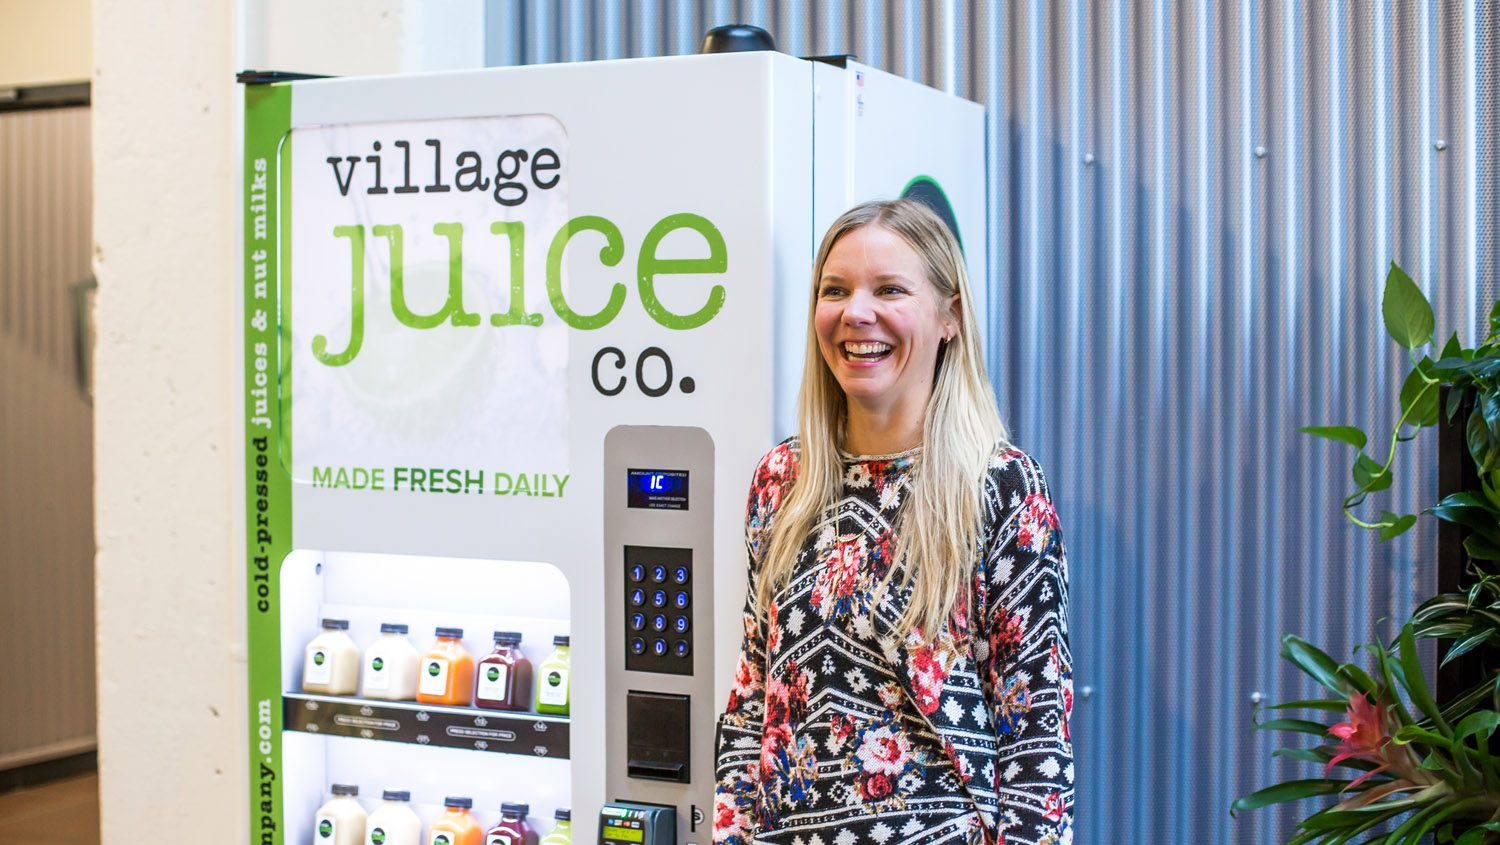 Village Juice is a local business that grew thanks to the Winston-Salem startup ecosystem and community.